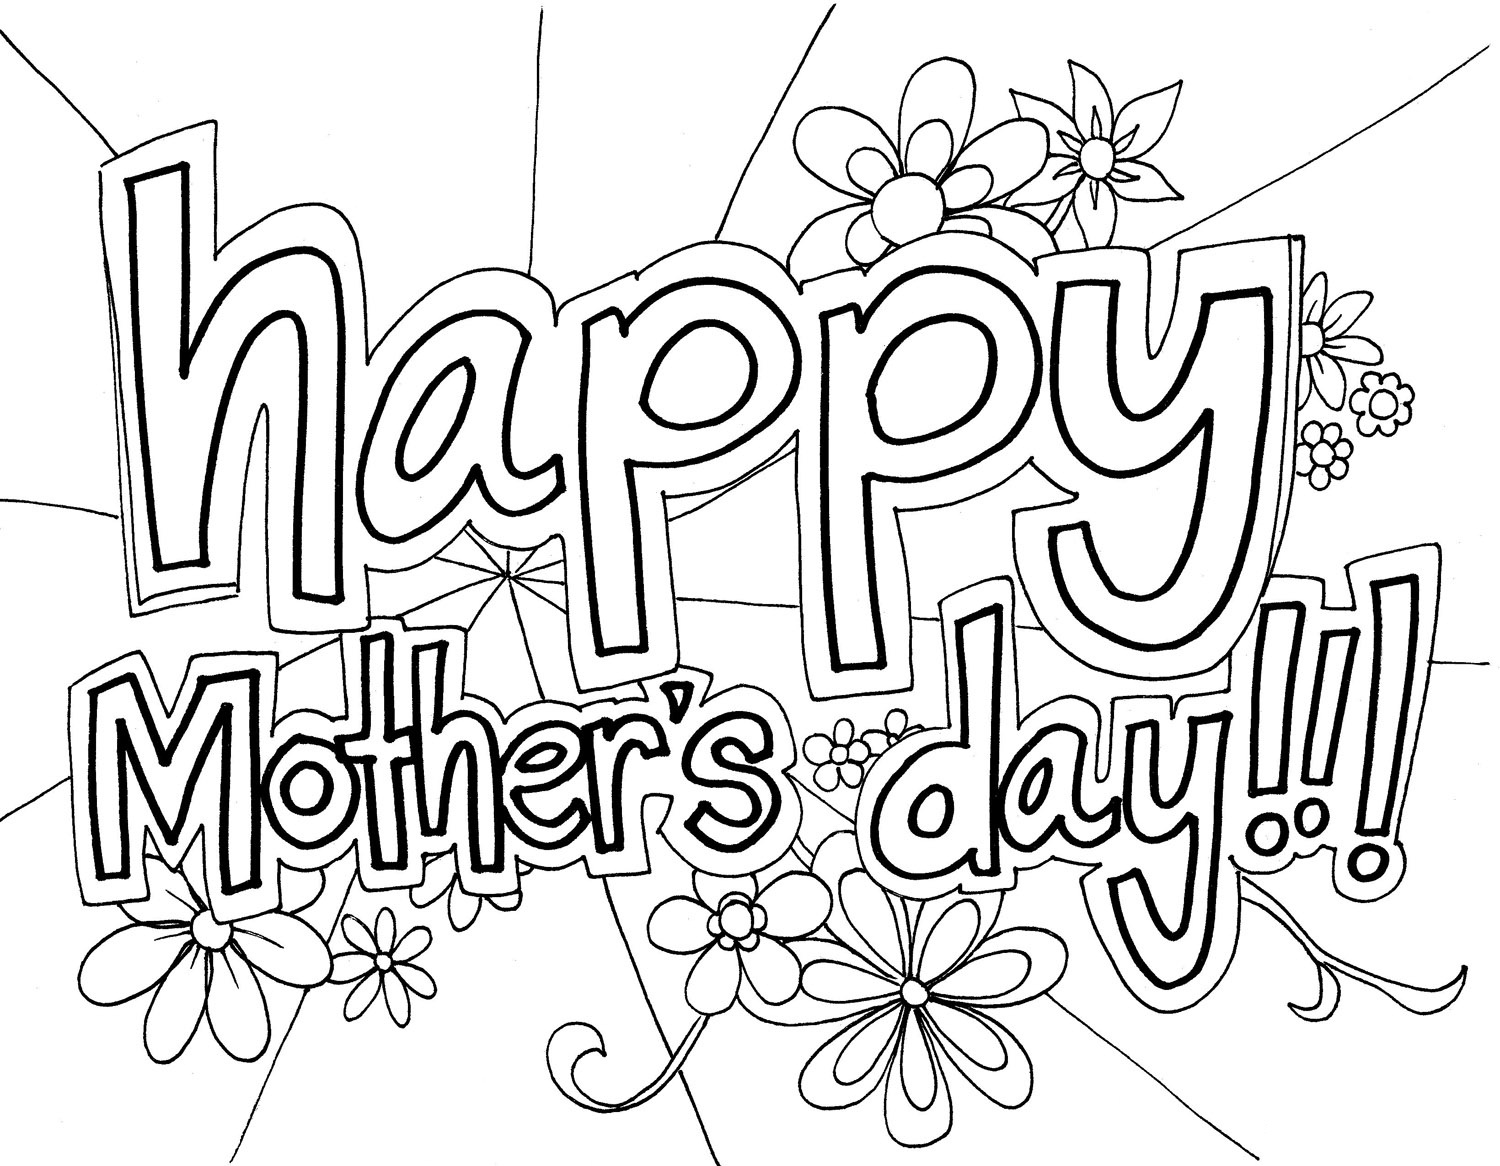 Free printable mothers day coloring pages for kids for May coloring pages printable